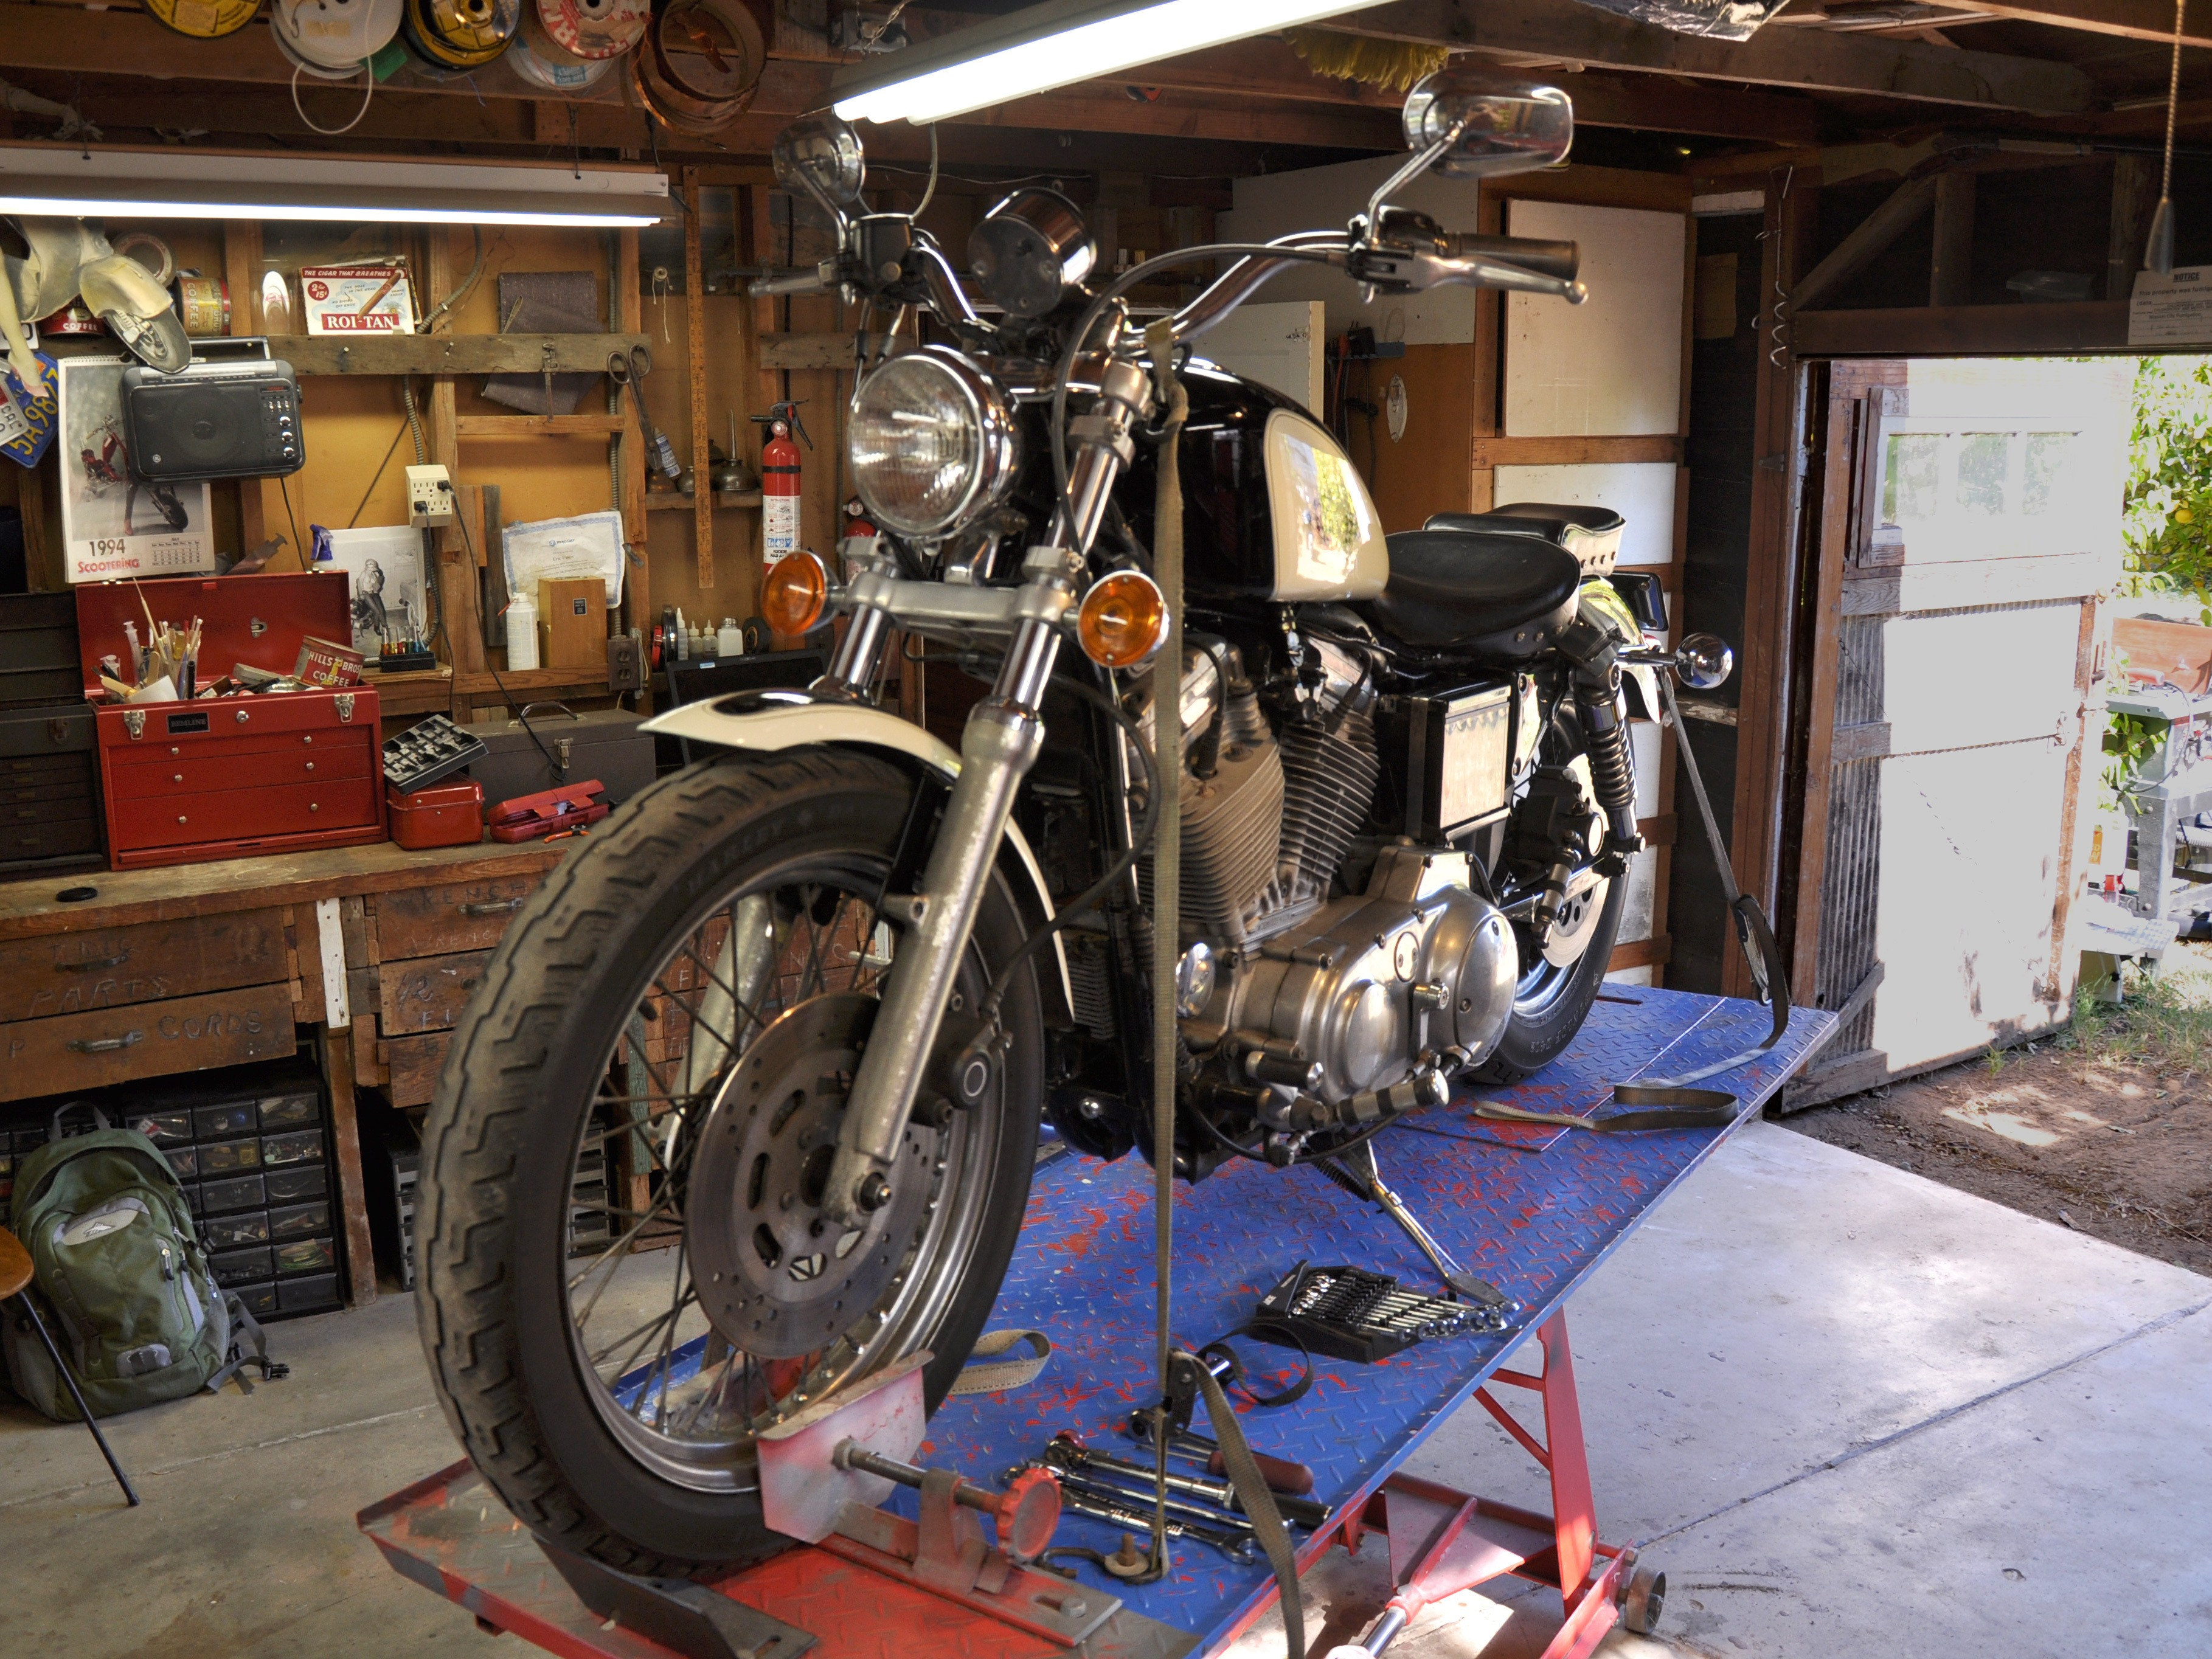 Sportster Engine Diagram Harley Davidson Sportster Evolution Oil Change ifixit Repair Guide Of Sportster Engine Diagram